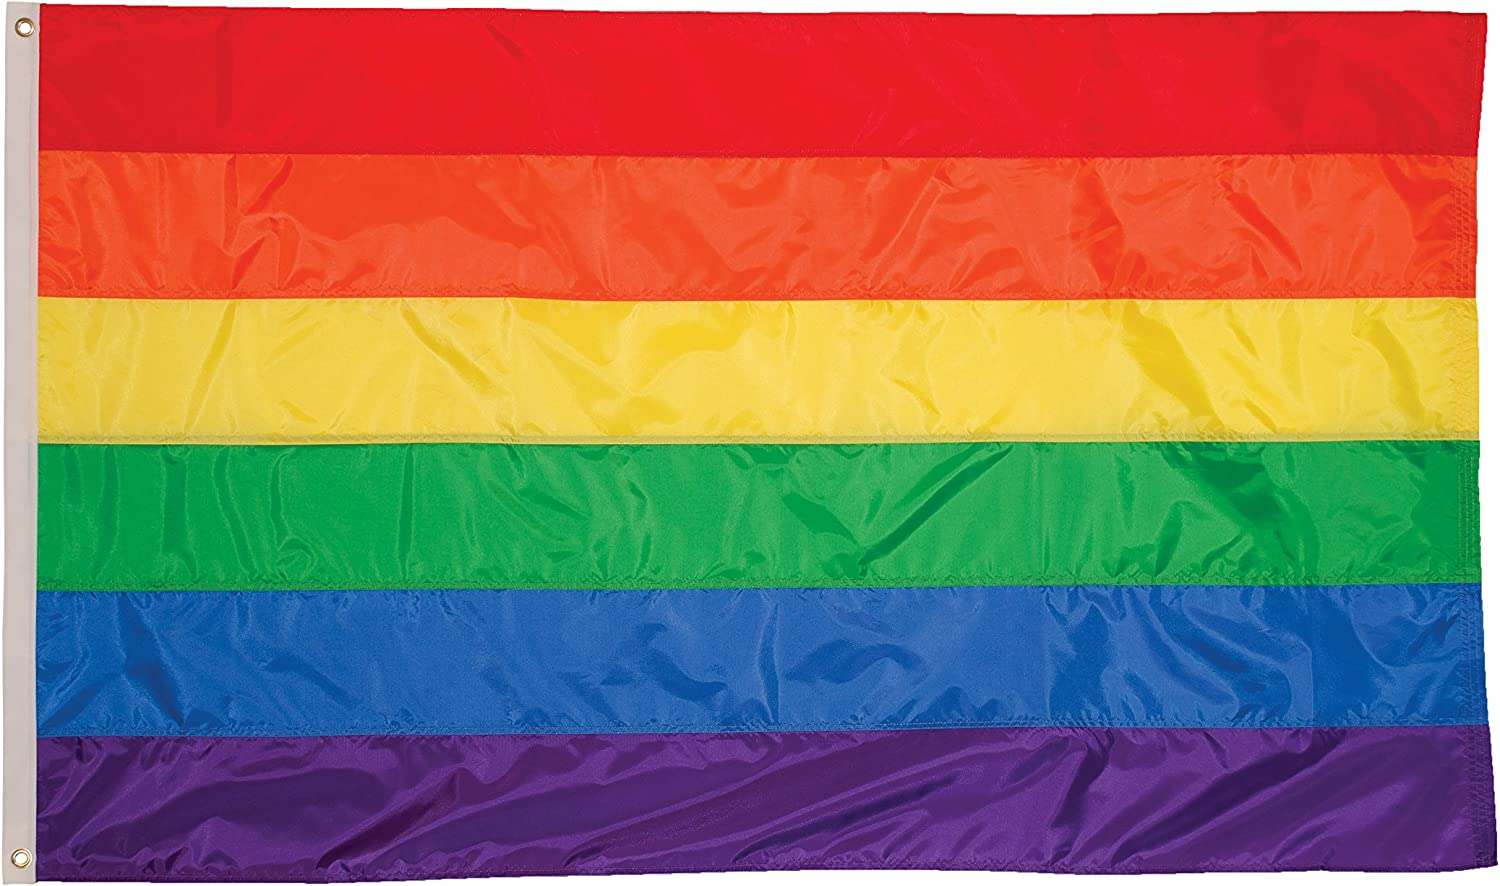 In the Breeze 3 Foot by 5 Foot Rainbow Flag - Rainbow Grommet Flag with Sewn Stripes